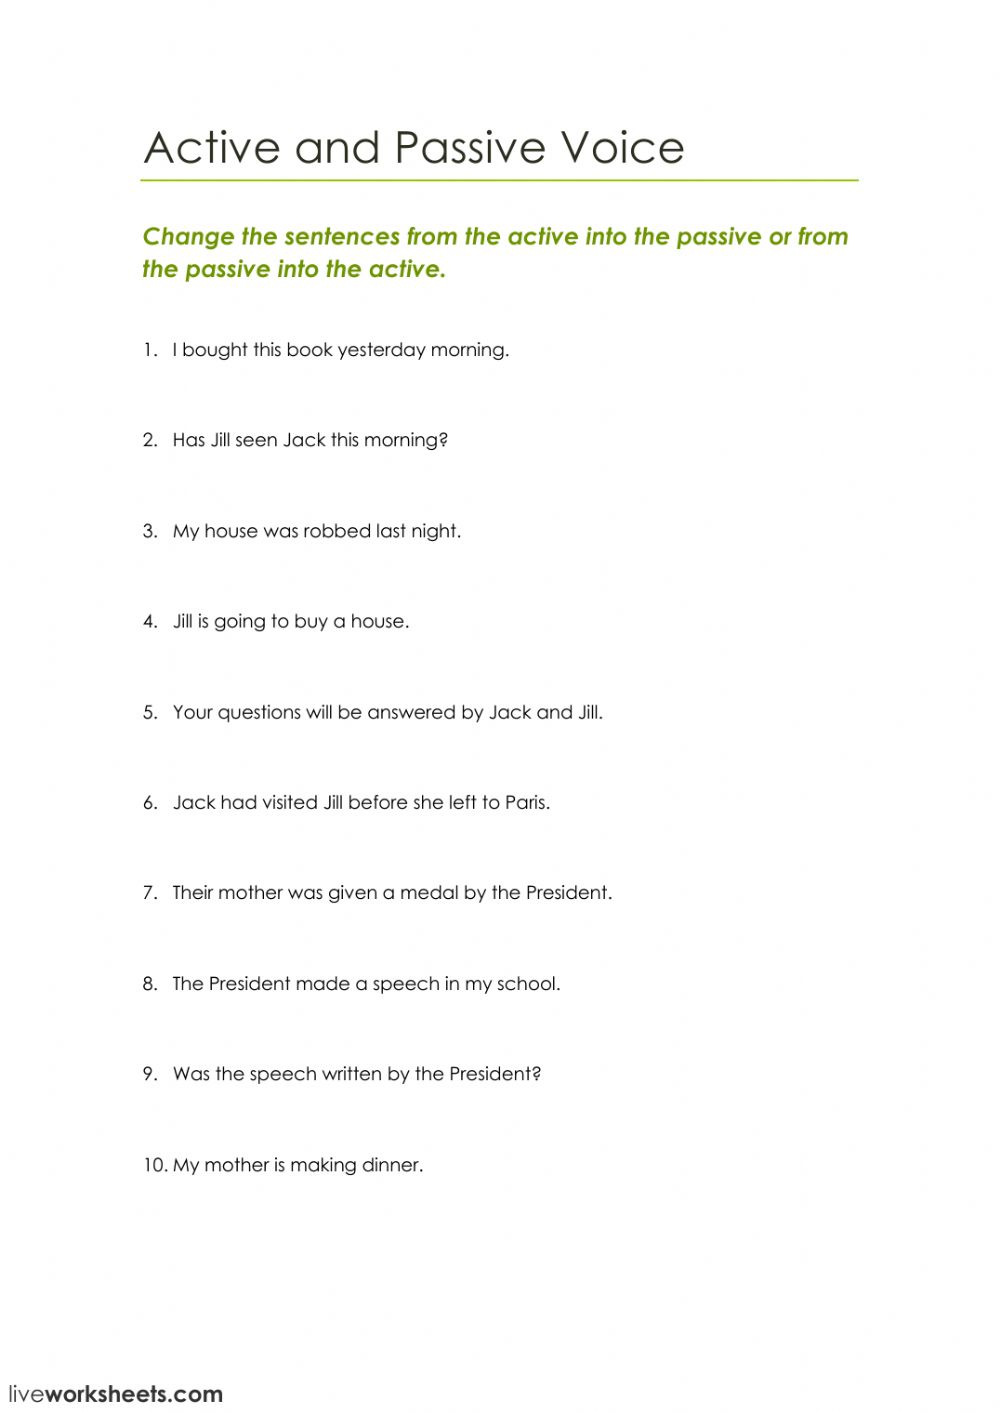 worksheet Active And Passive Voice Worksheets active and passive voice interactive worksheet text